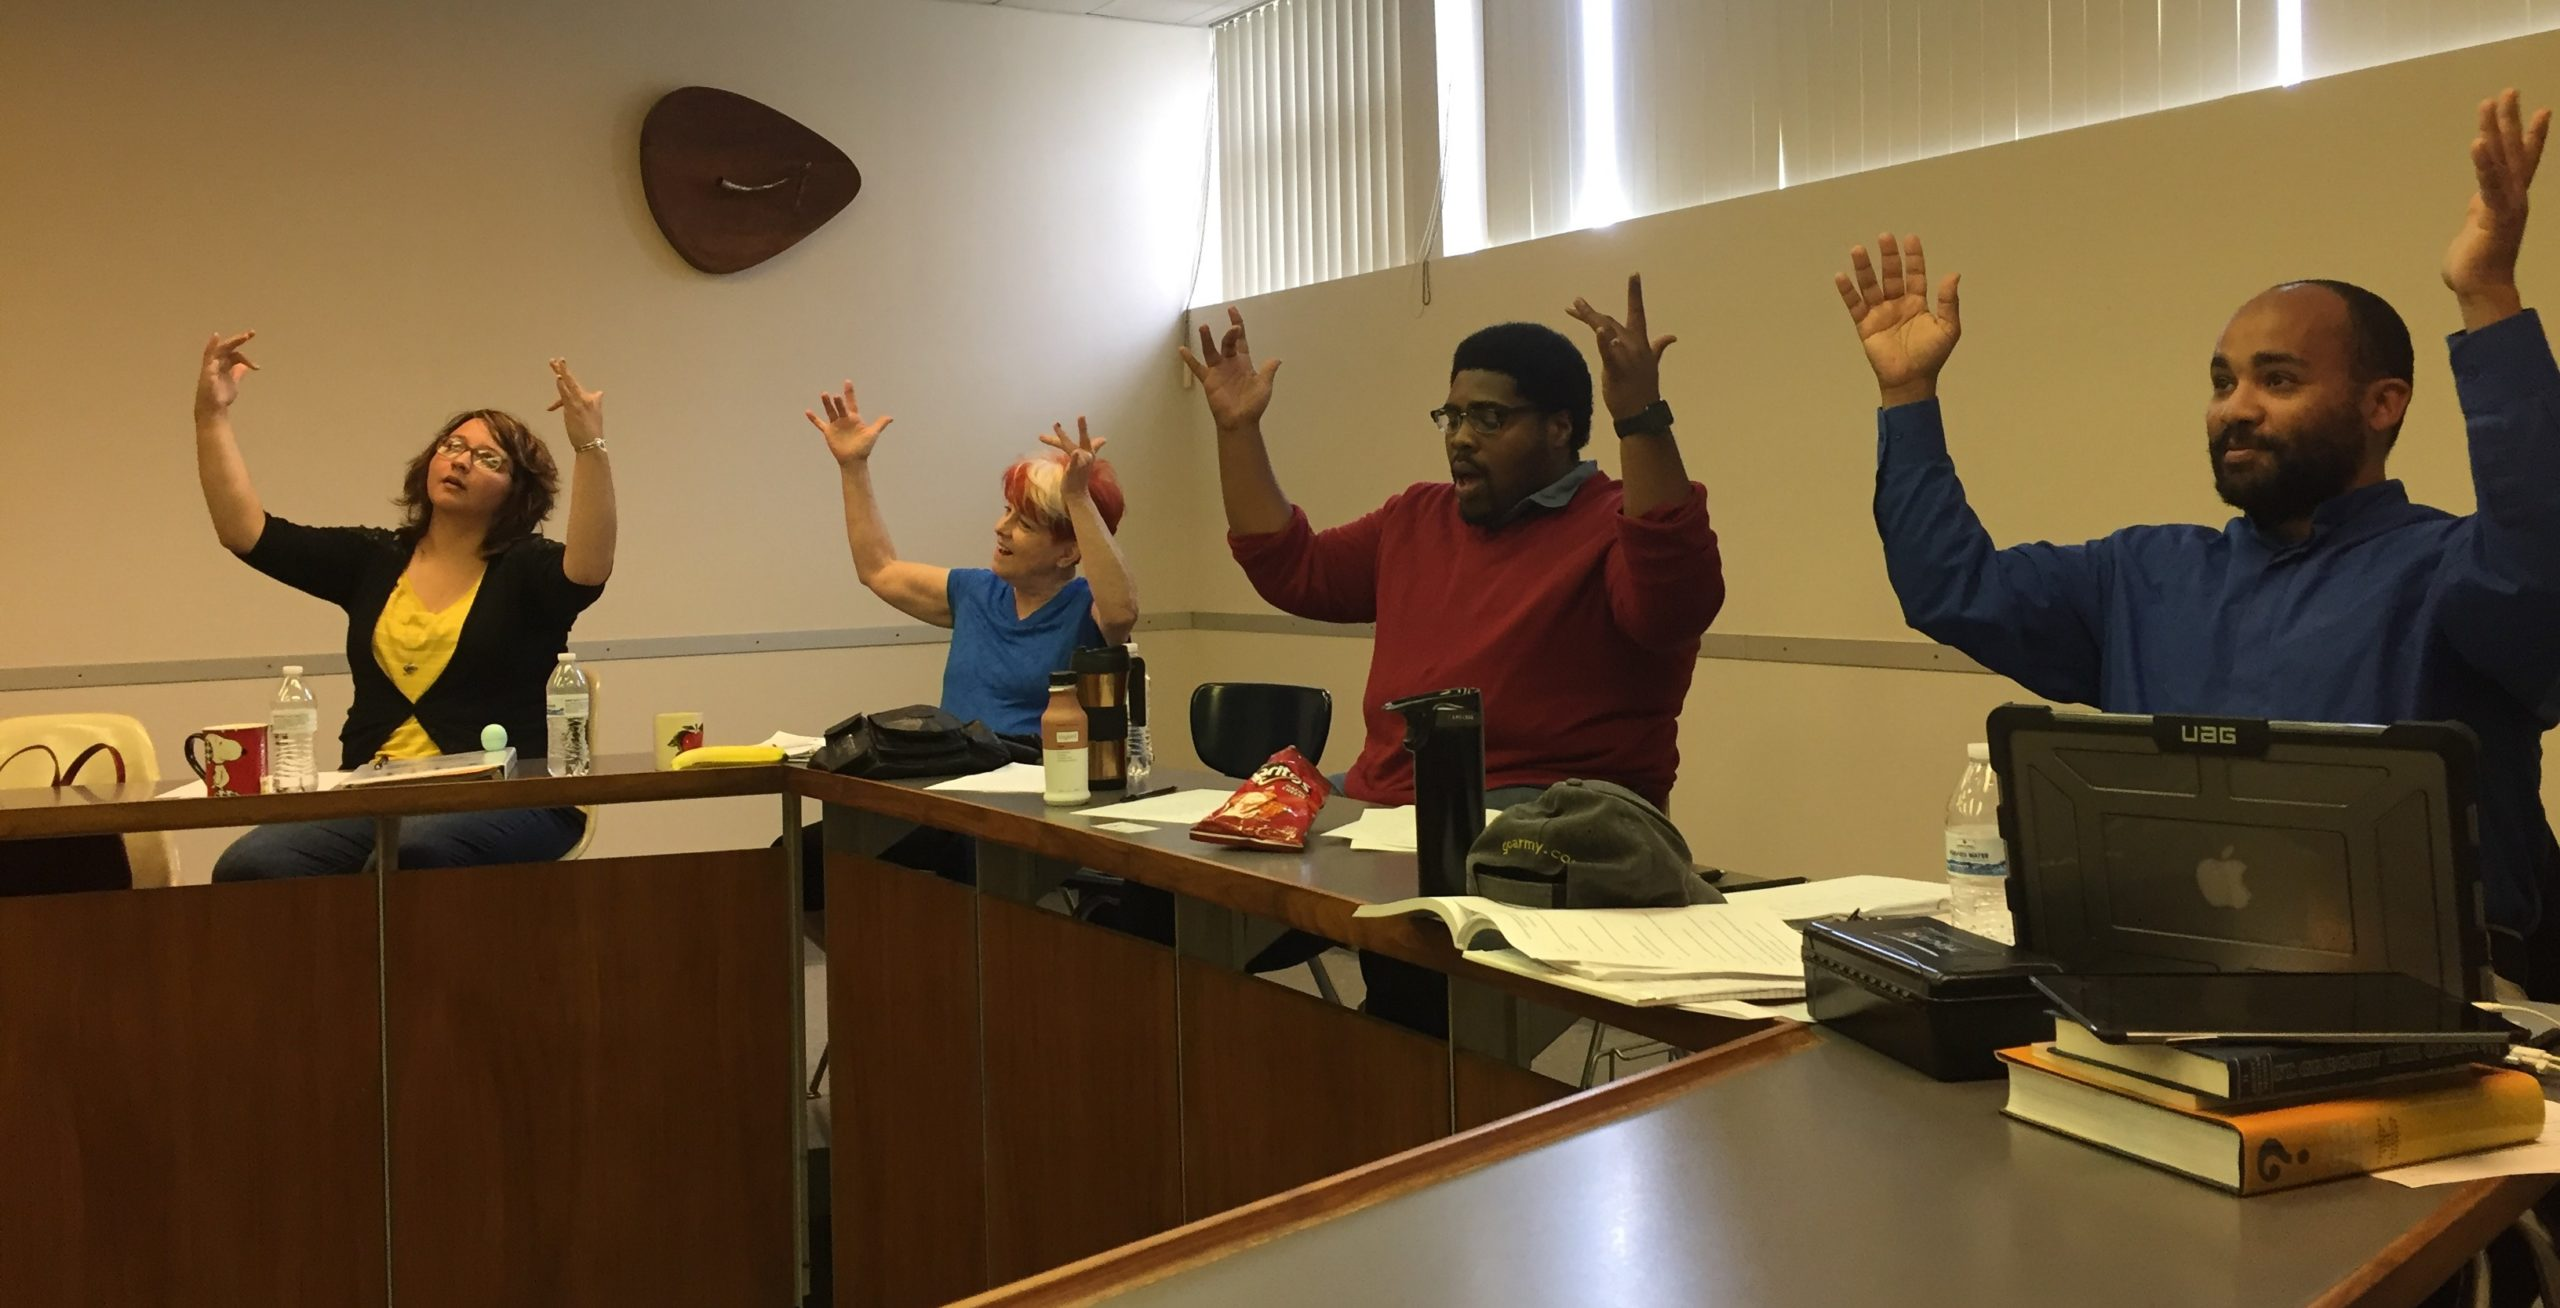 Lutheran Friends of the Deaf - Our Mission